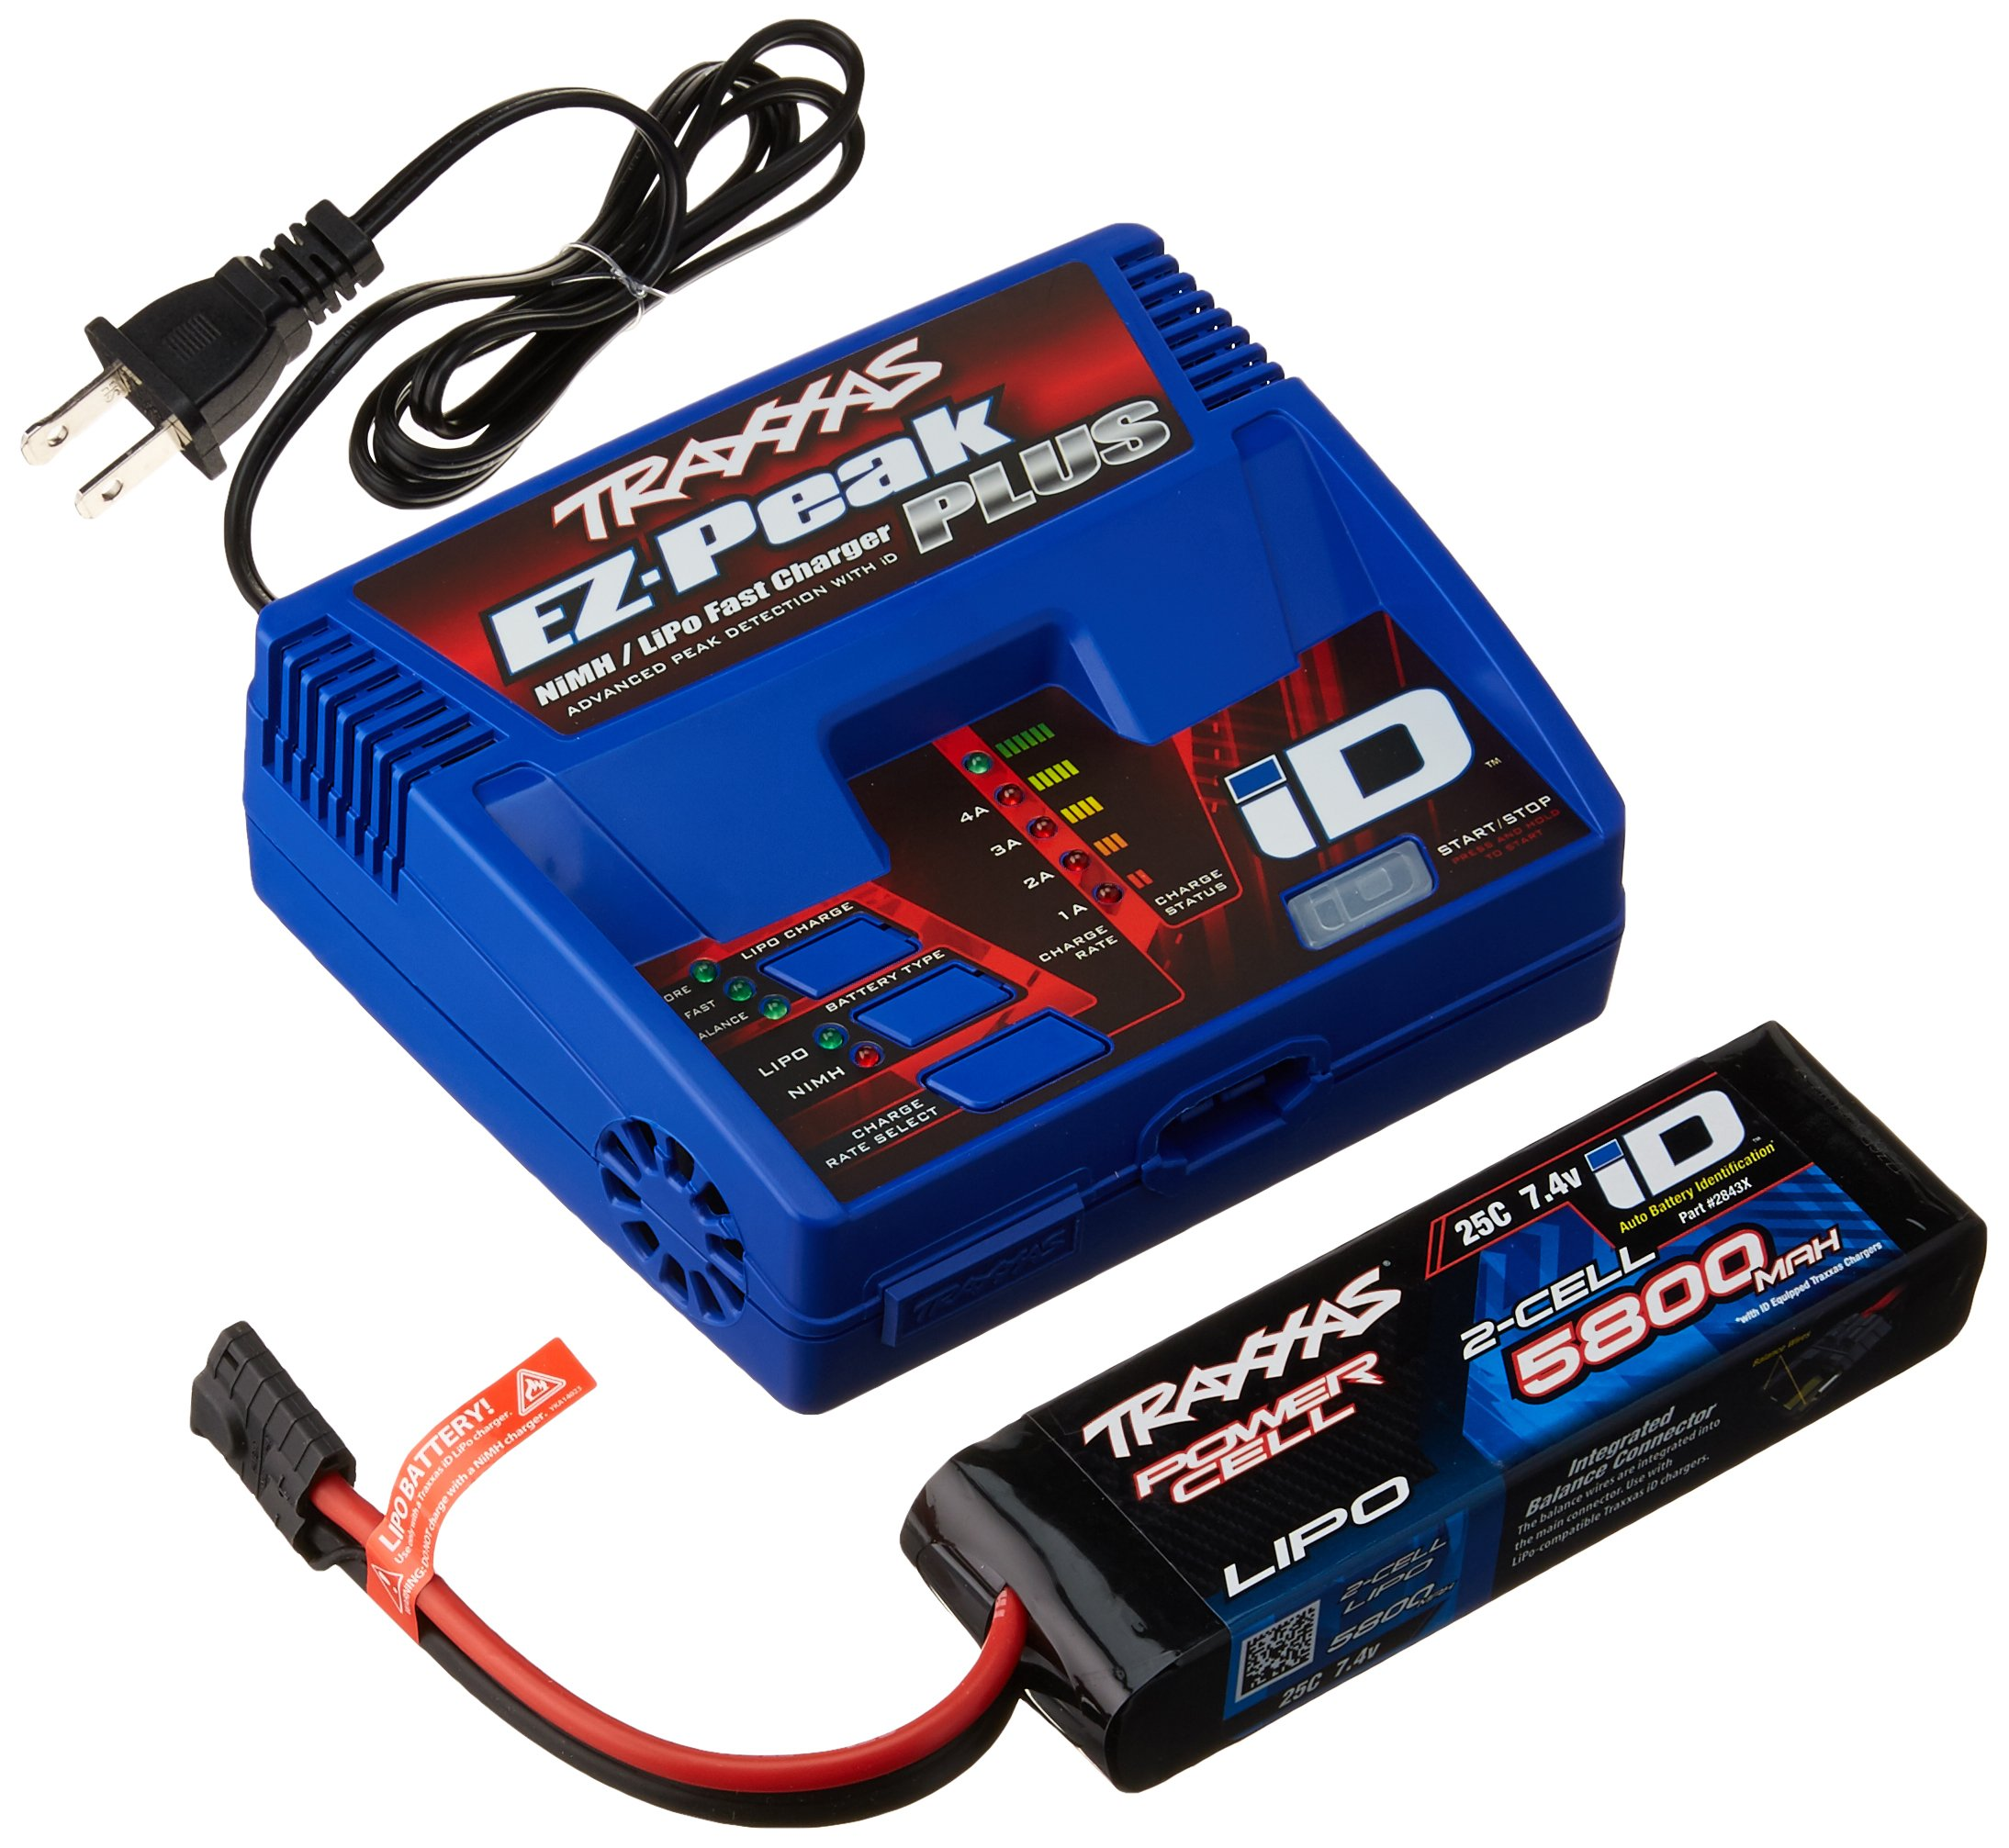 Traxxas 2992 LiPo Battery and Charger Completer Pack | eBay